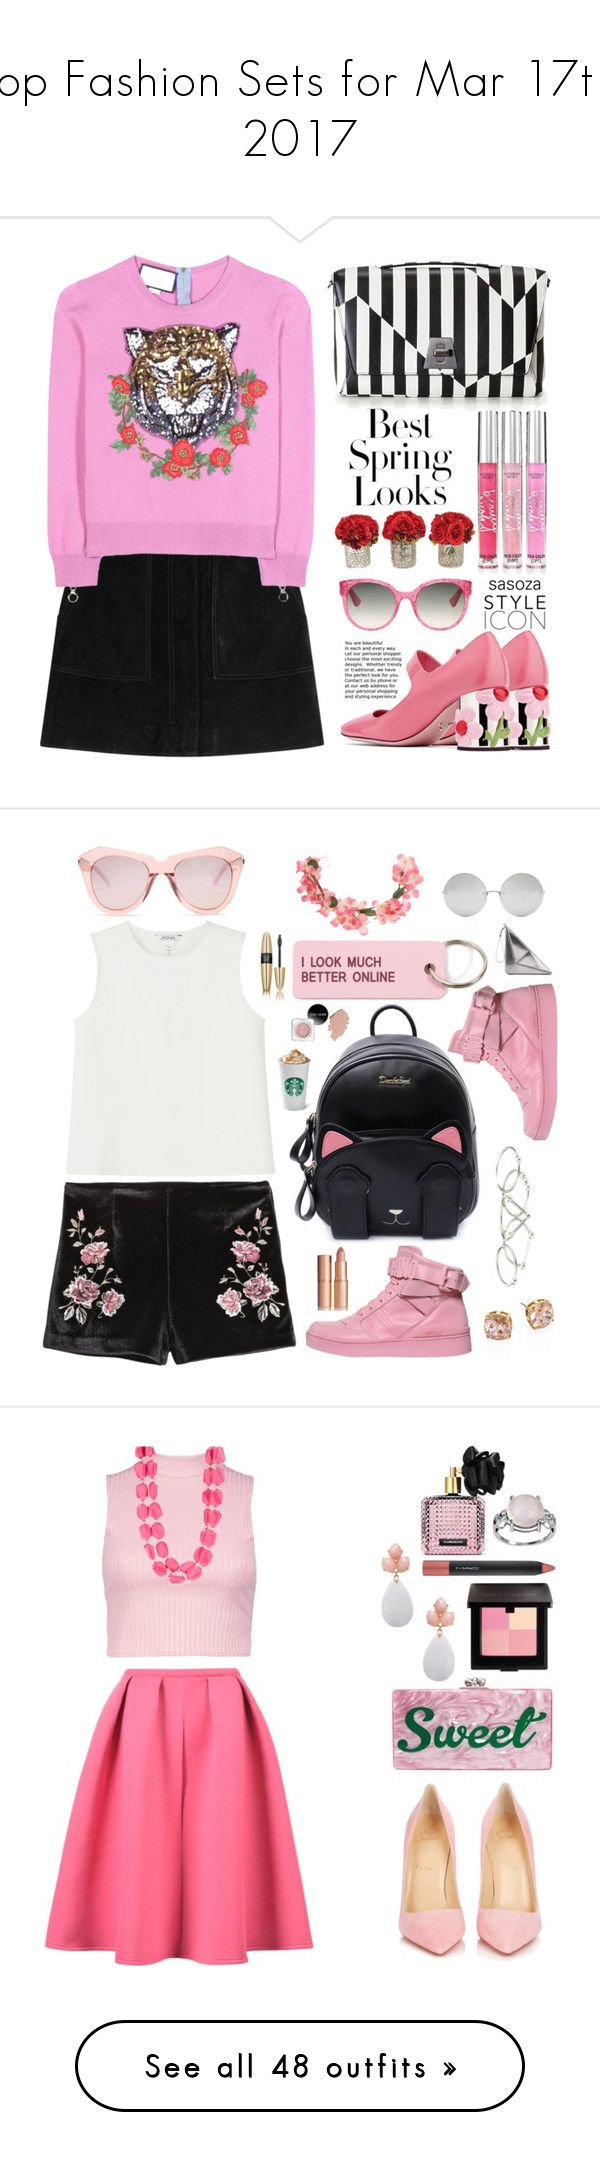 """""""Top Fashion Sets for Mar 17th, 2017"""" by polyvore ❤ liked on Polyvore featuring Prada, rag & bone, Gucci, Akris, H&M, Victoria's Secret, The French Bee, Monki, Moschino and Various Projects"""